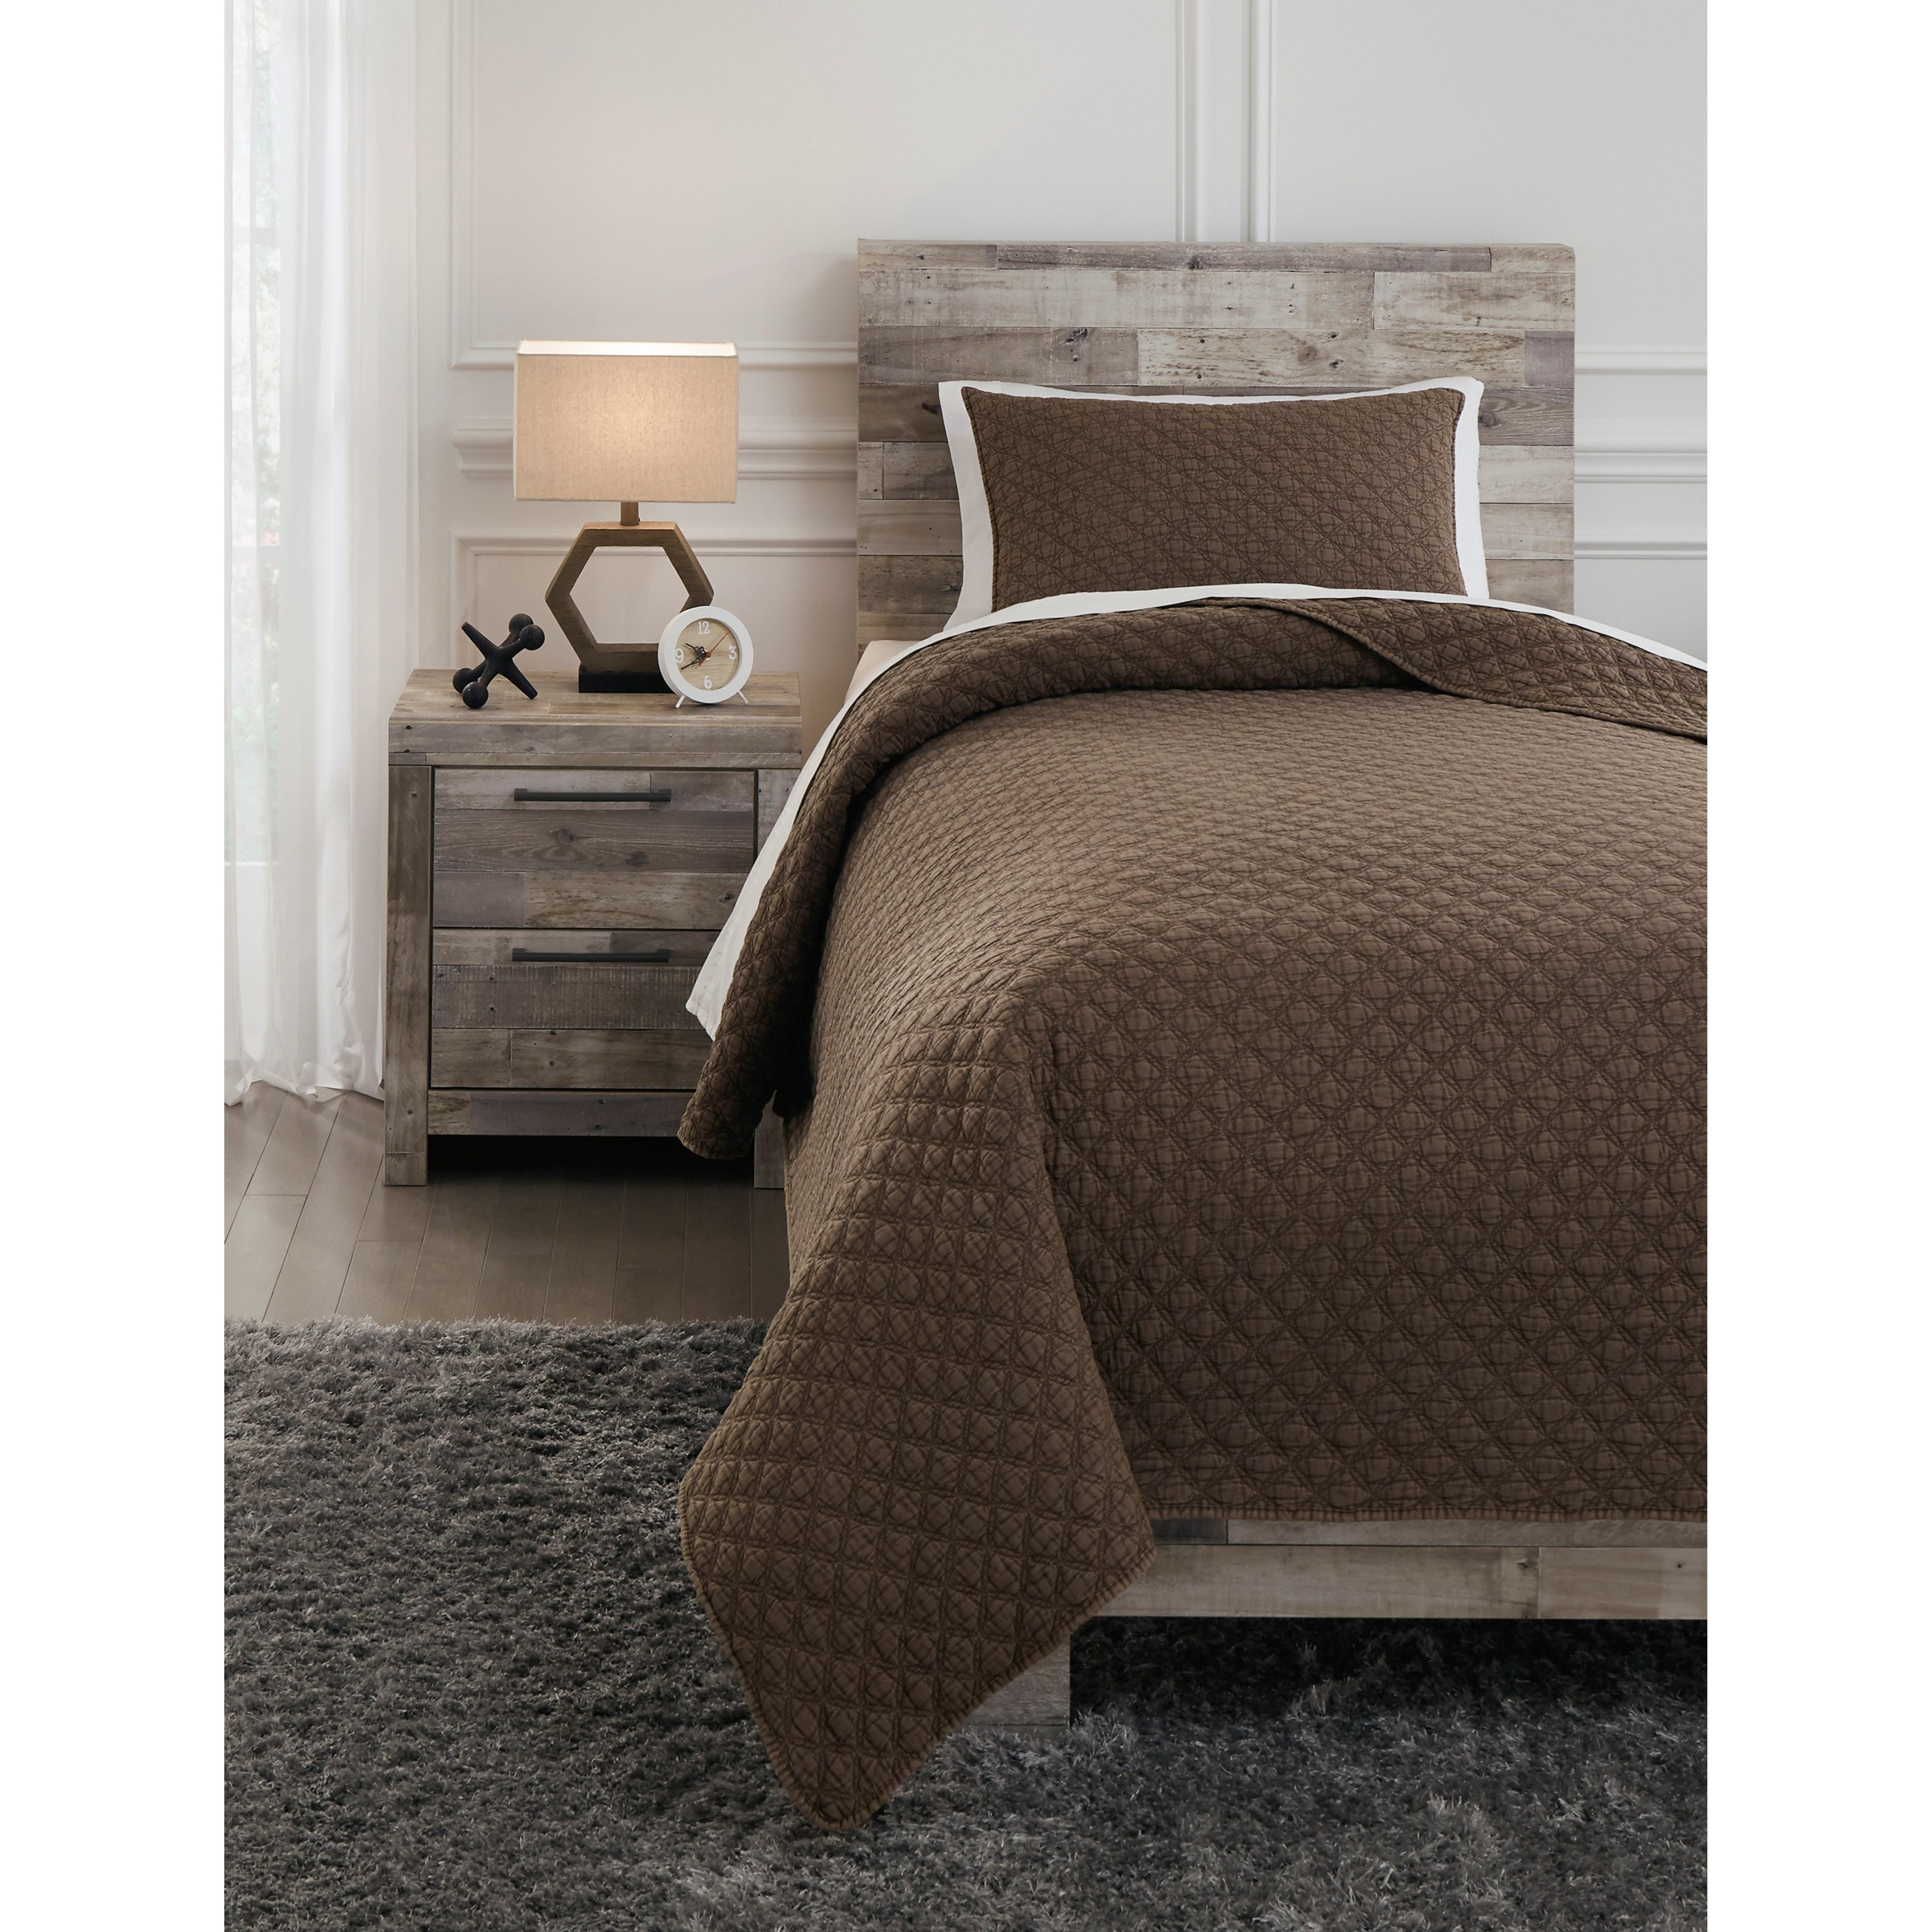 Bedding Sets Twin Ryter Brown Coverlet Set by Signature Design by Ashley at Furniture Barn